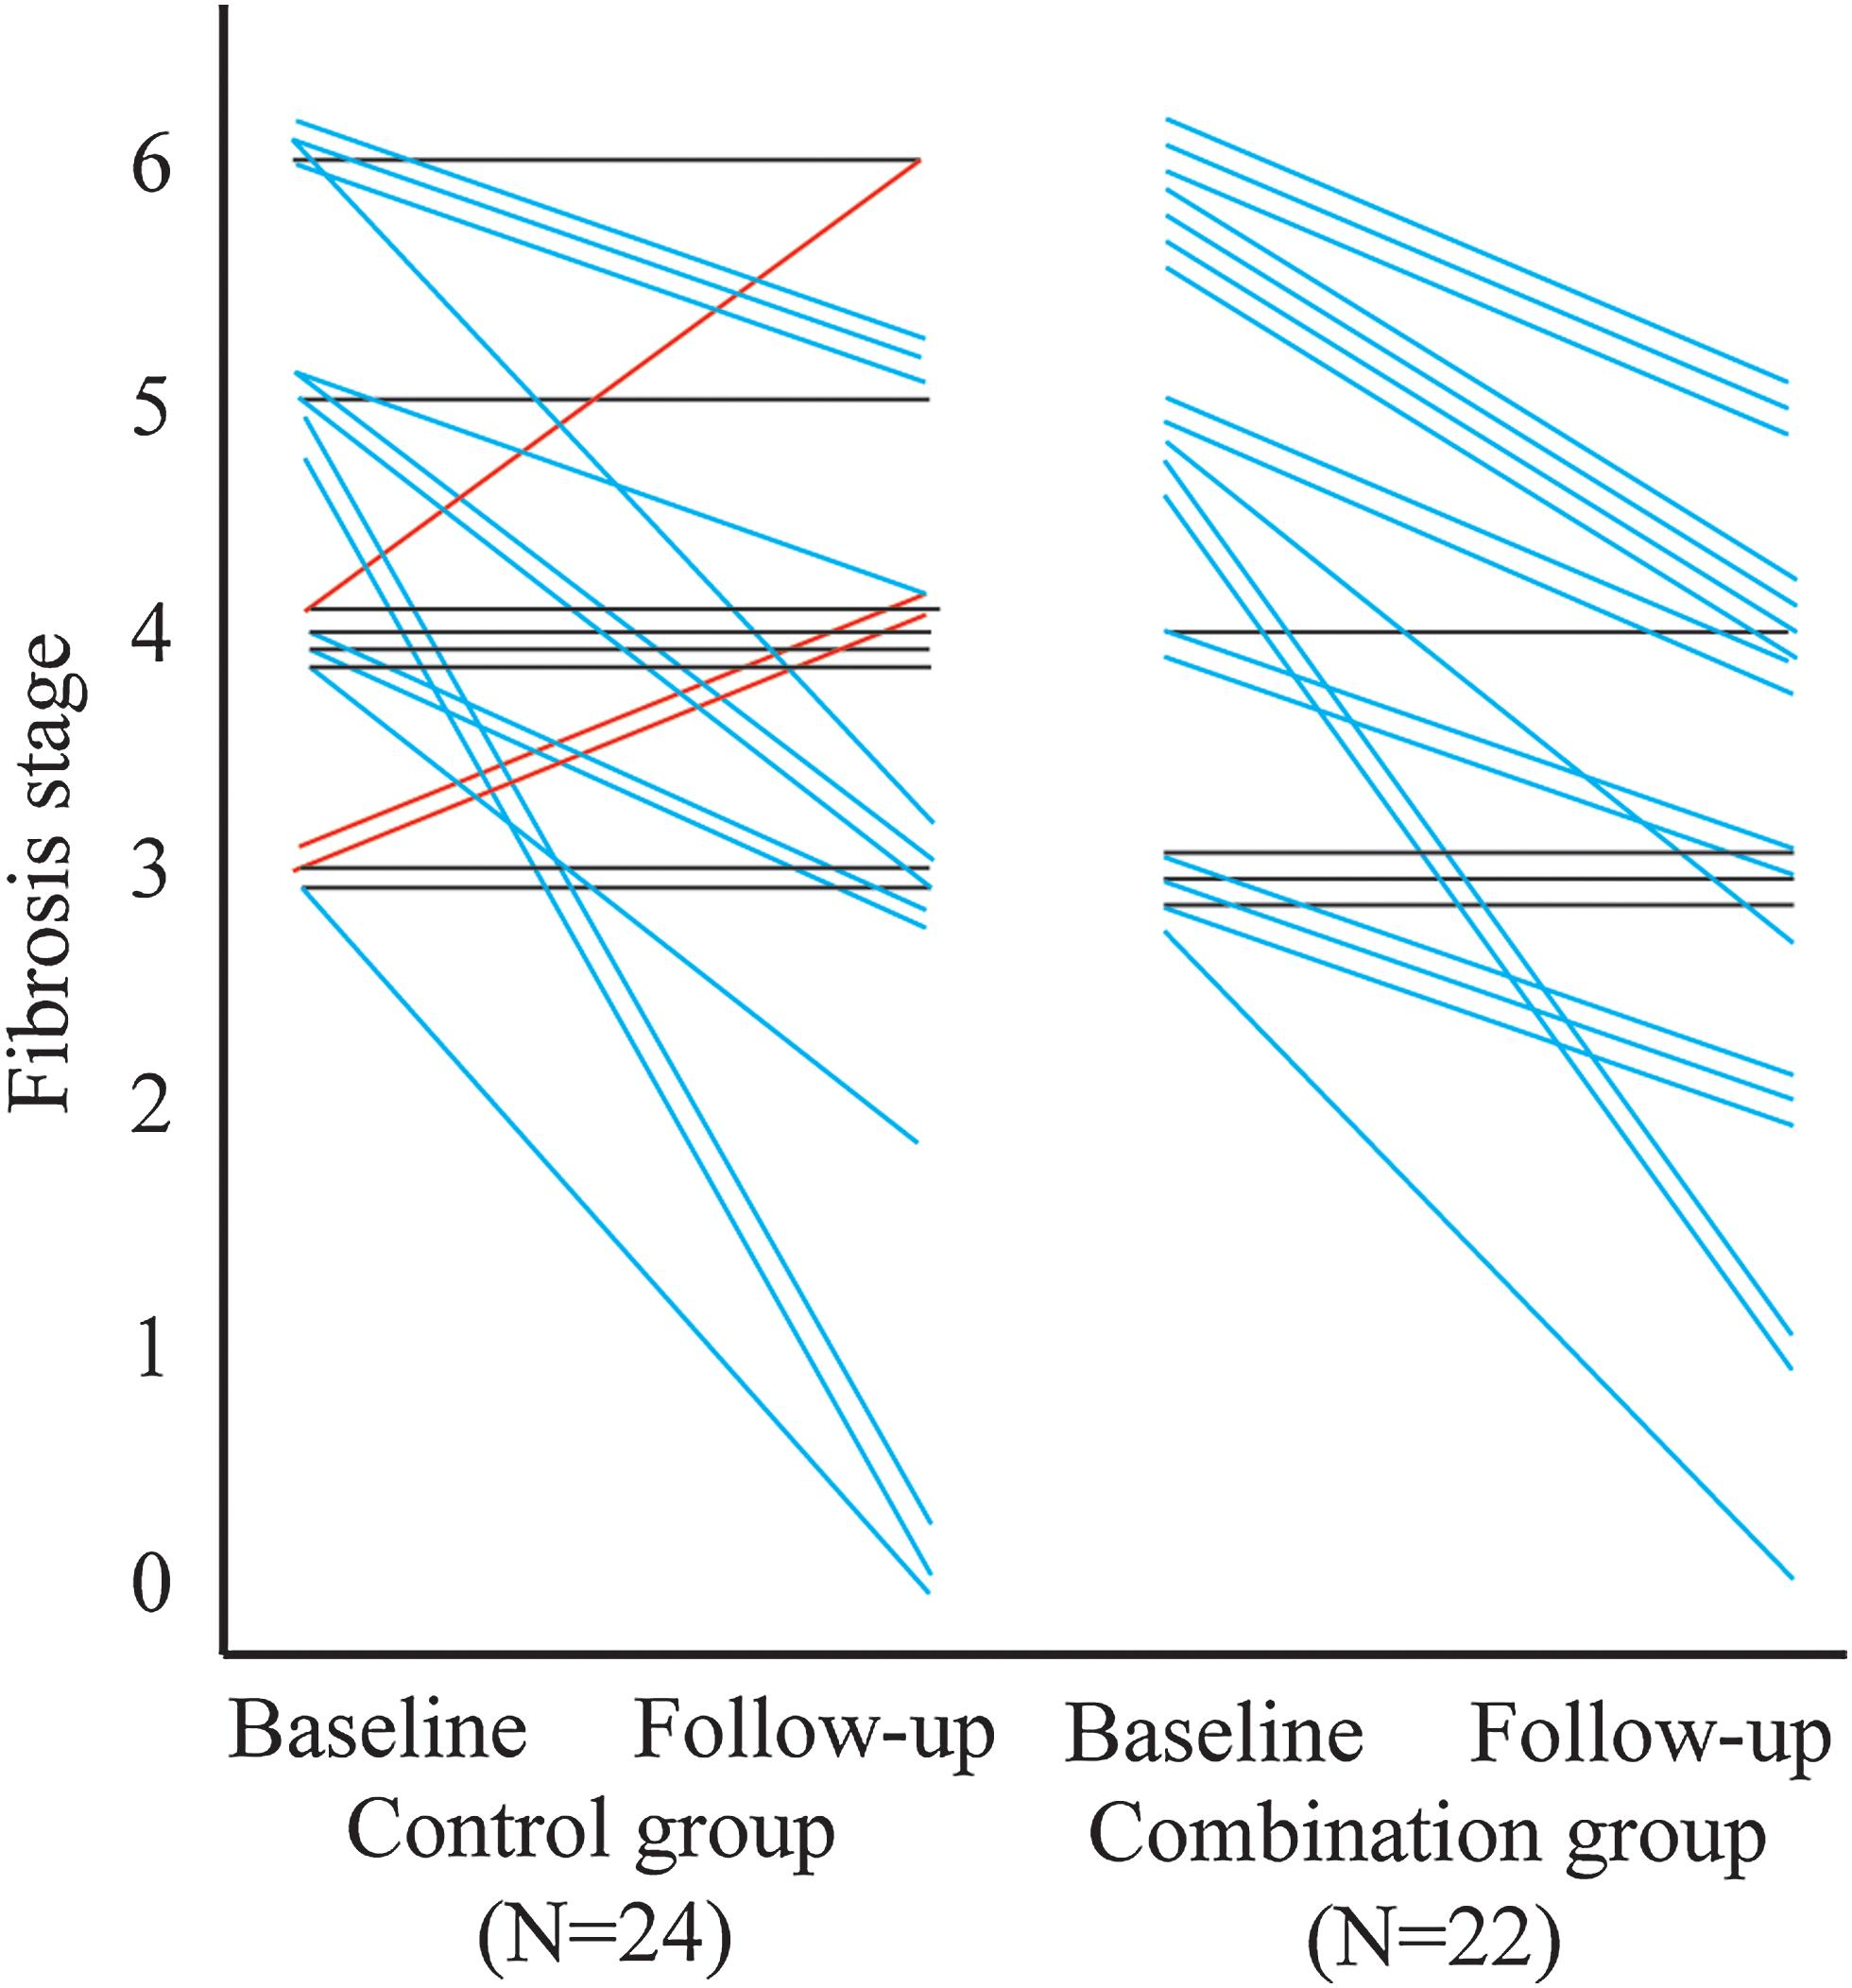 Changes of Ishak fibrosis stage between the combination group and control group at baseline and at 48 weeks.